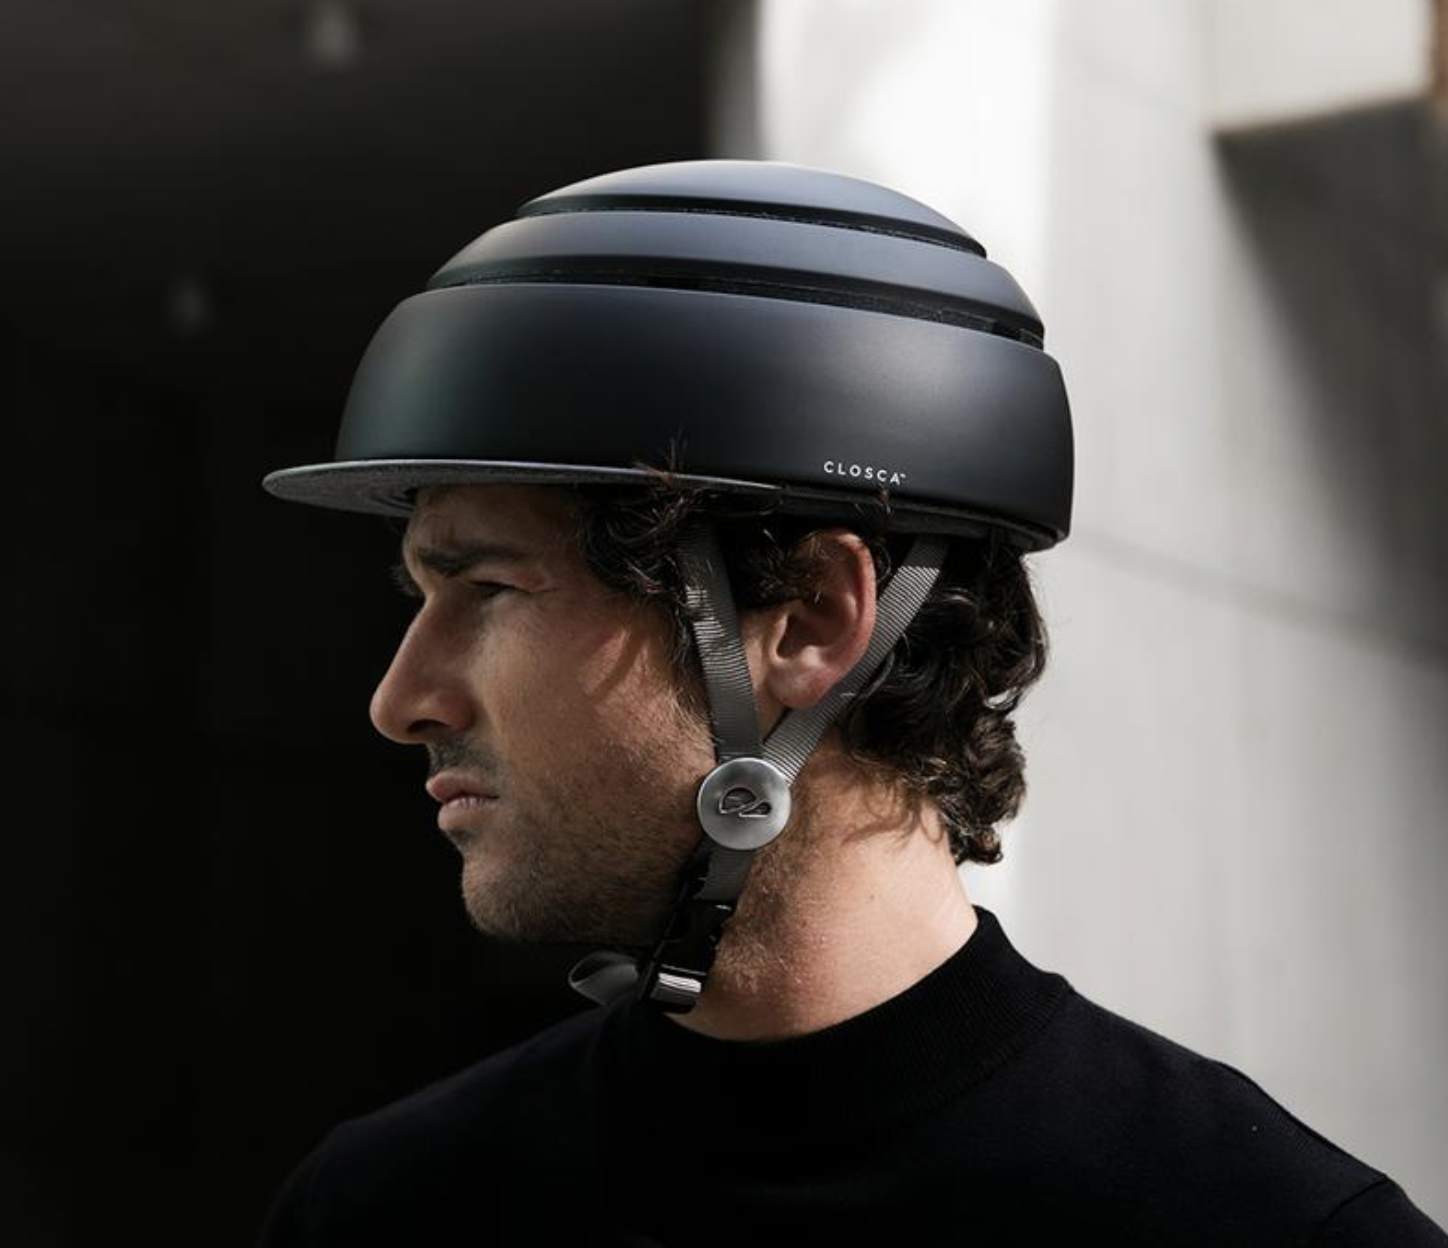 Closca helmets offer convenience in their easy carrying